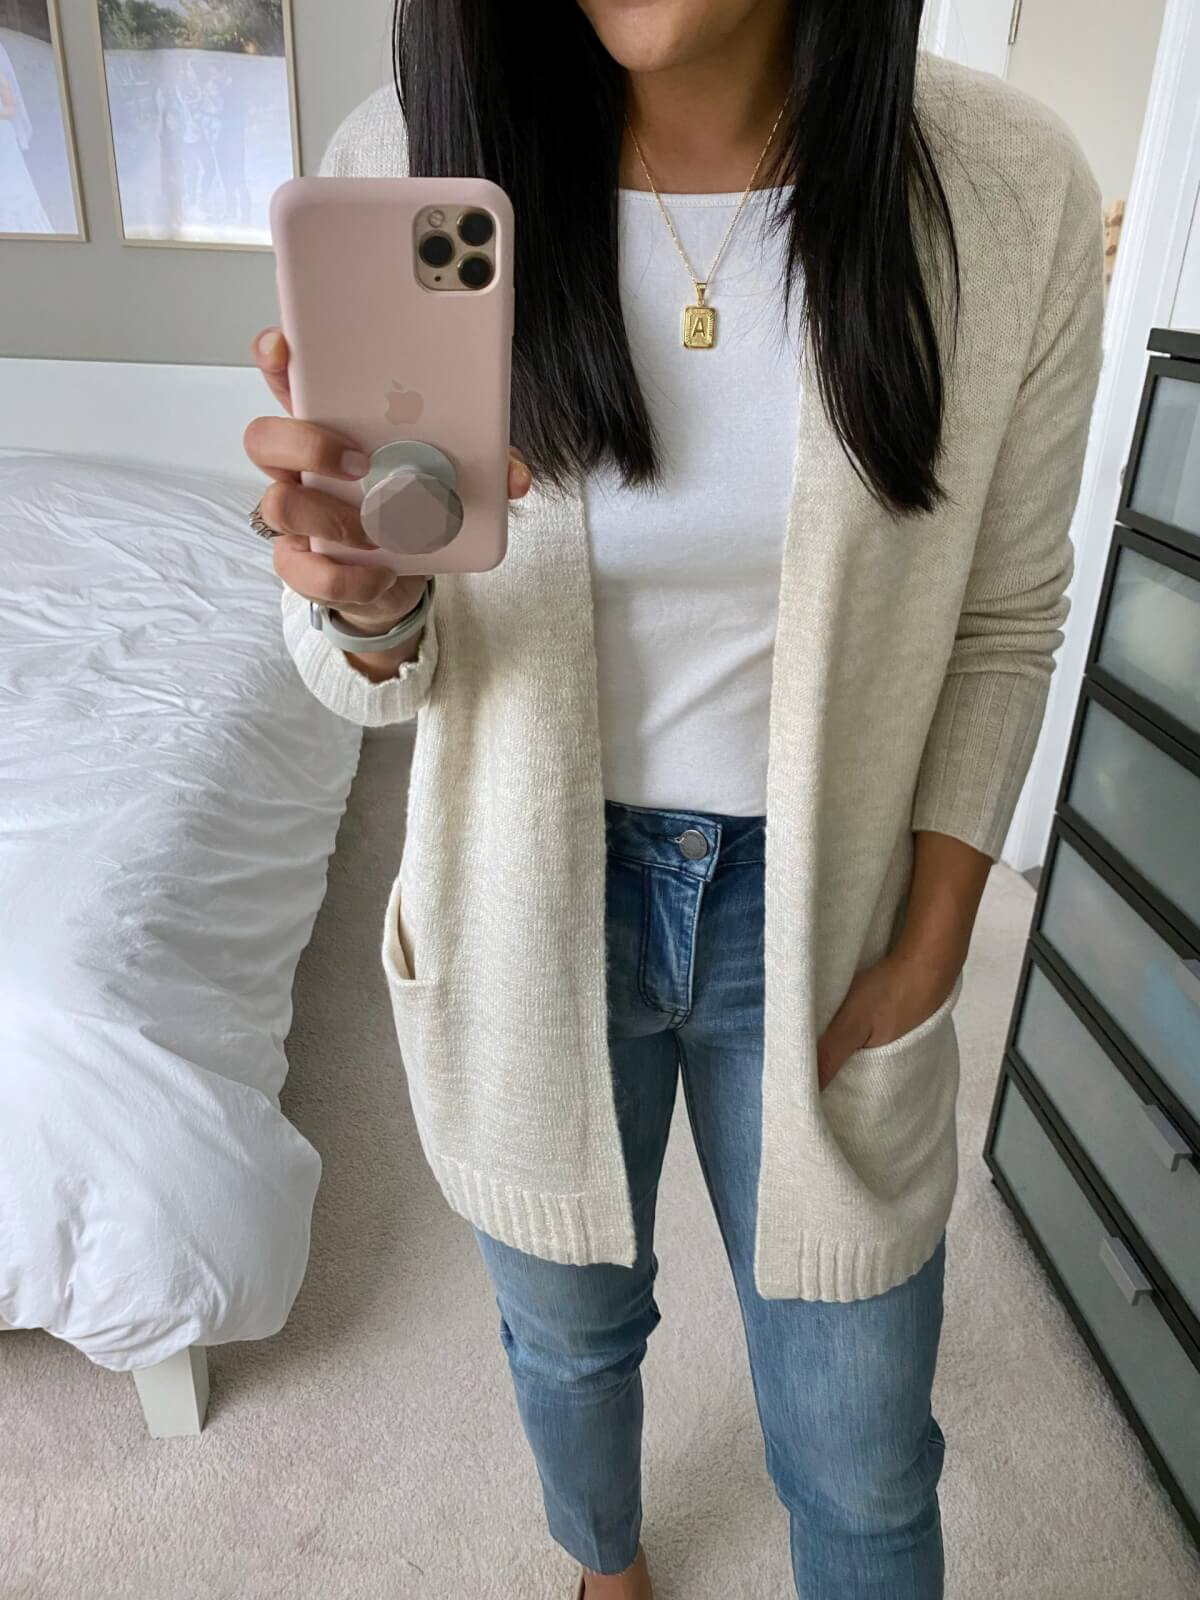 NSale Nicer Casual Outfit: white tee + straight leg jeans + cream long cardigan + gold initial pendant necklace